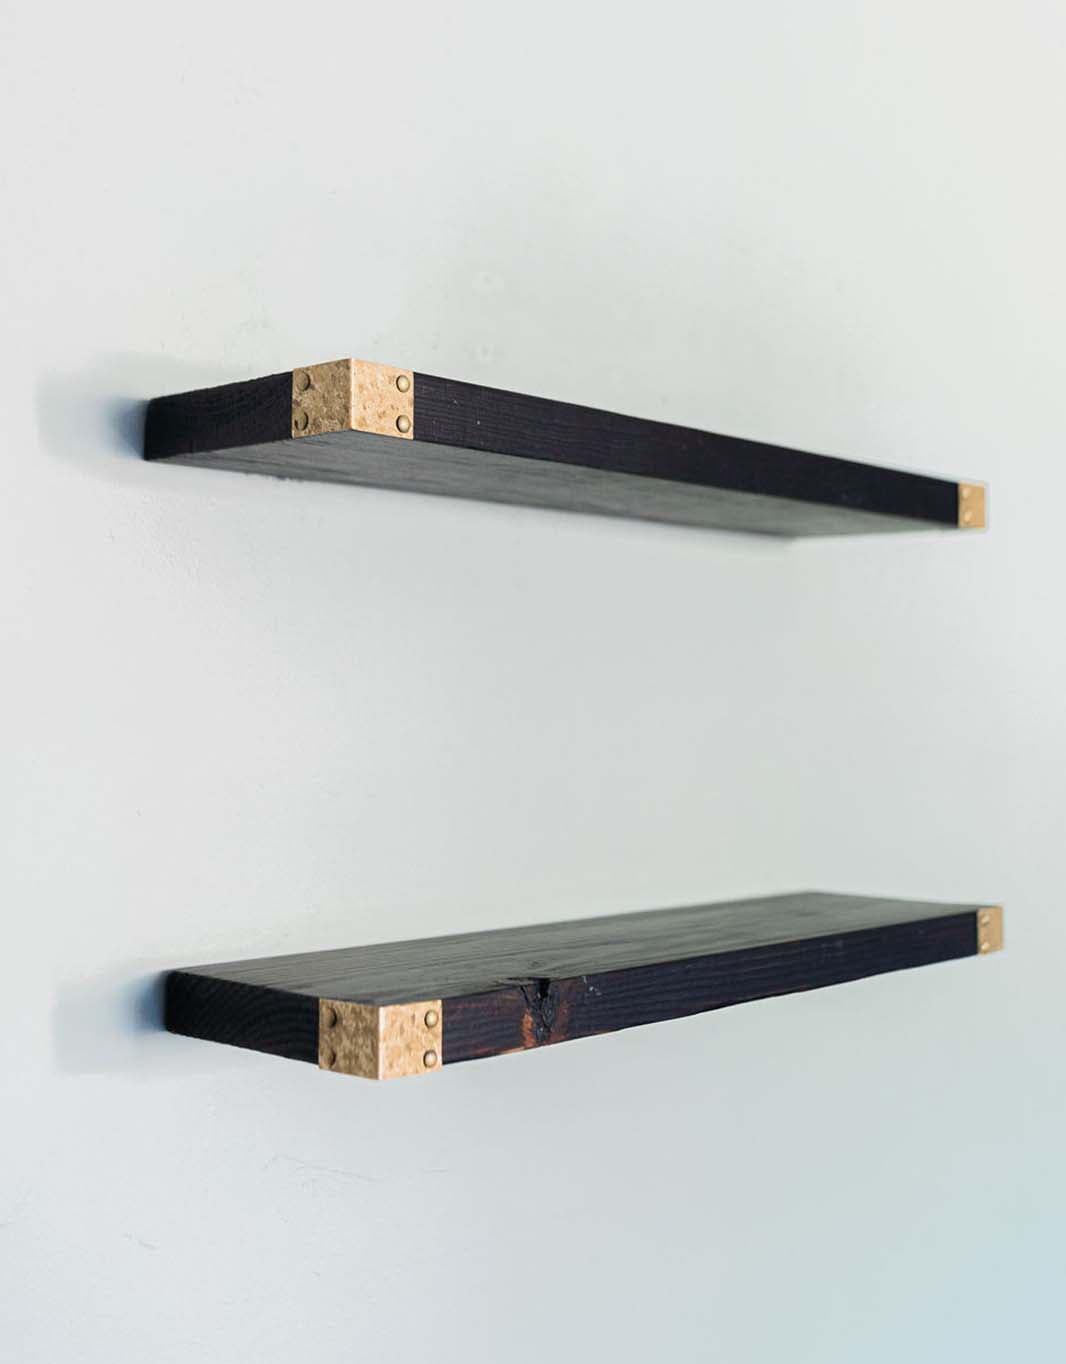 The Rowan - Deep Brown Floating Shelves with Gold Iron Corners, All Wood Wall Shelves, Triple Burn Finish - Set of 2 - Bedroom, Bathroom, Kitchen - 24 x 6 x 1.5 in